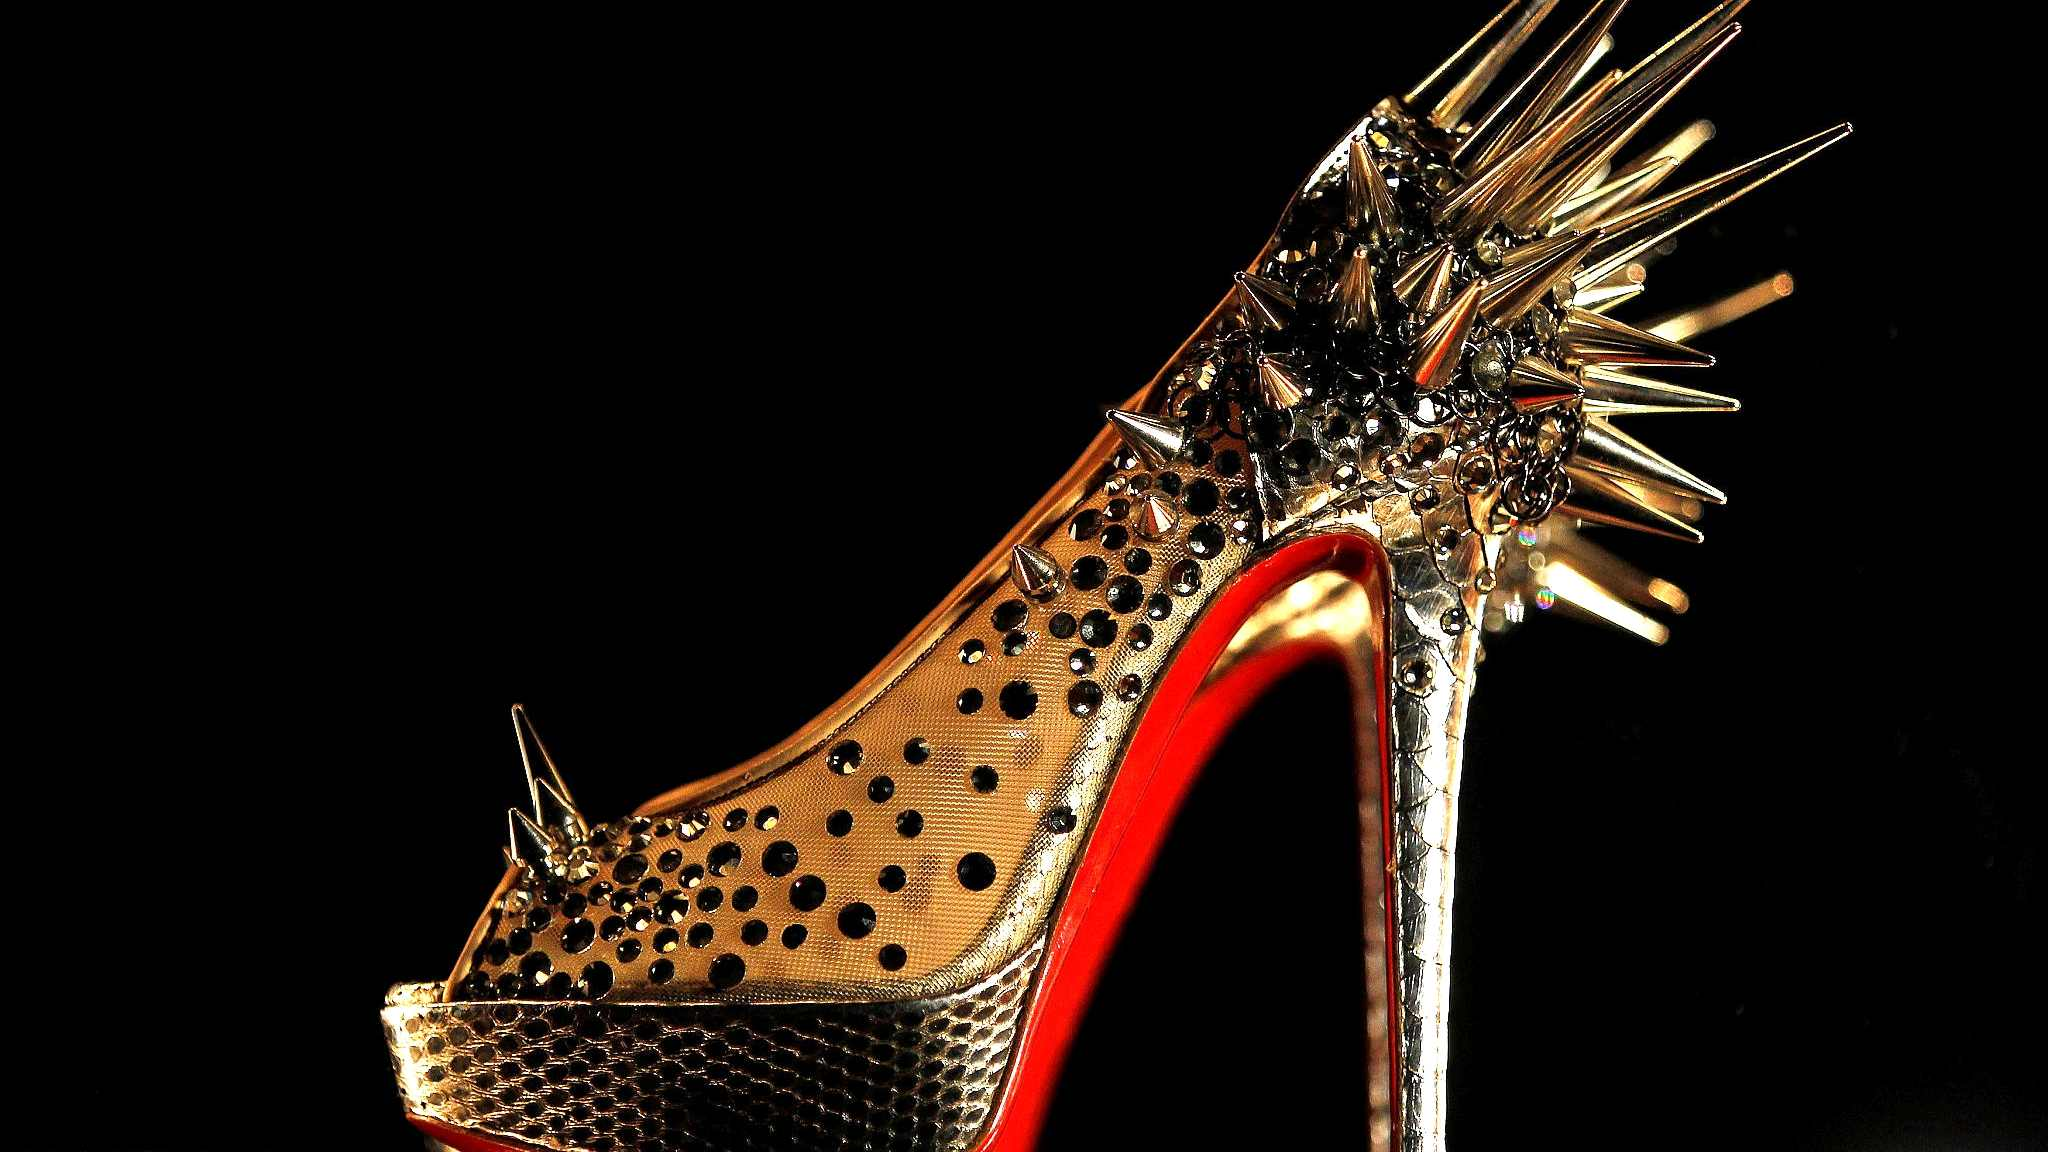 3351a62c866 Louboutin wins EU court battle over trademark red-soles shoes - CGTN